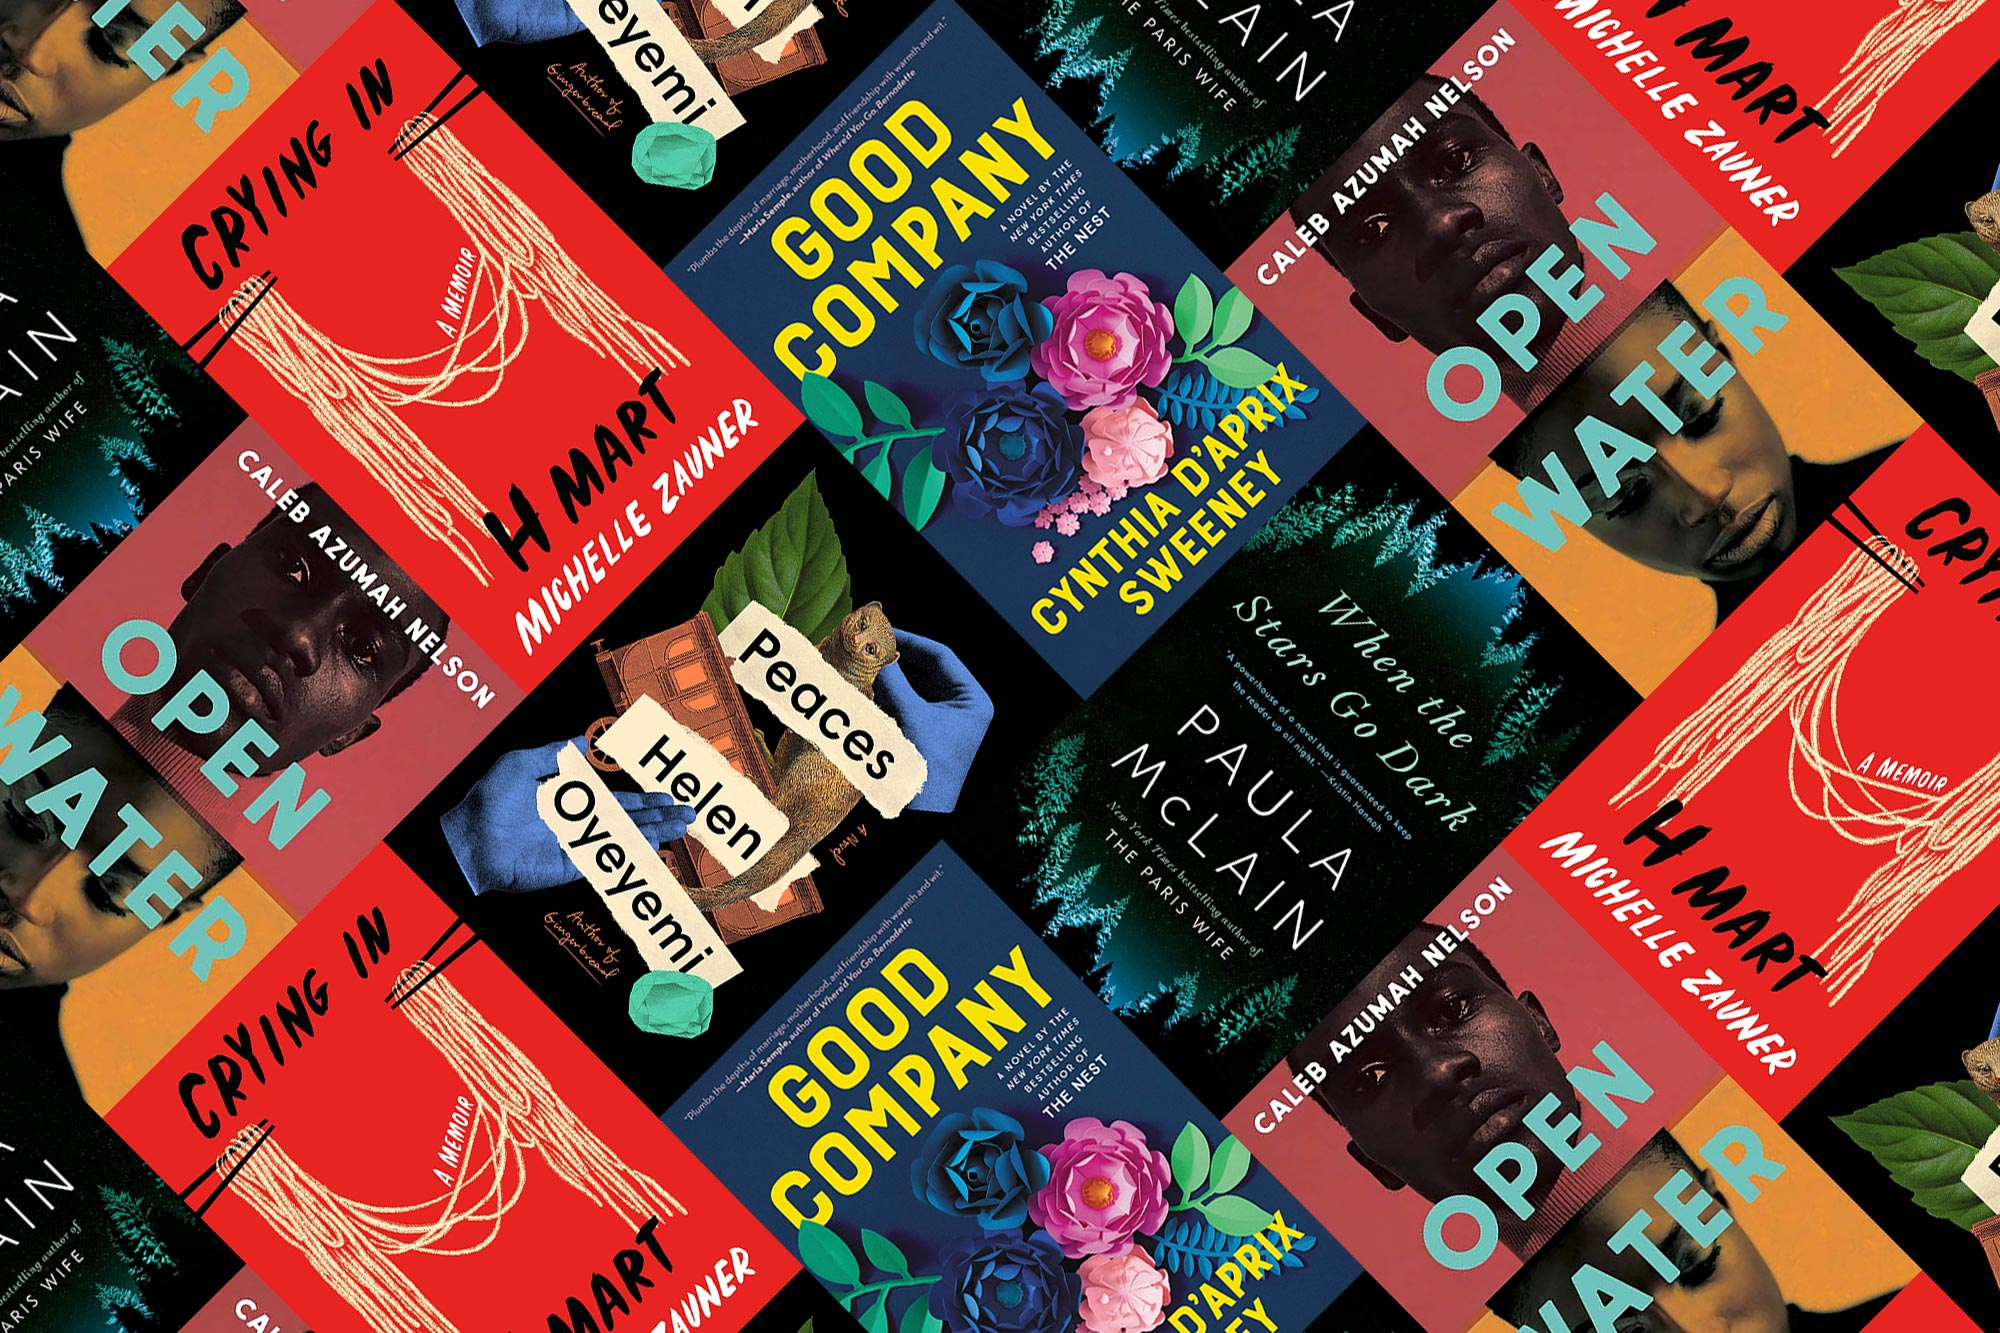 April Books to read